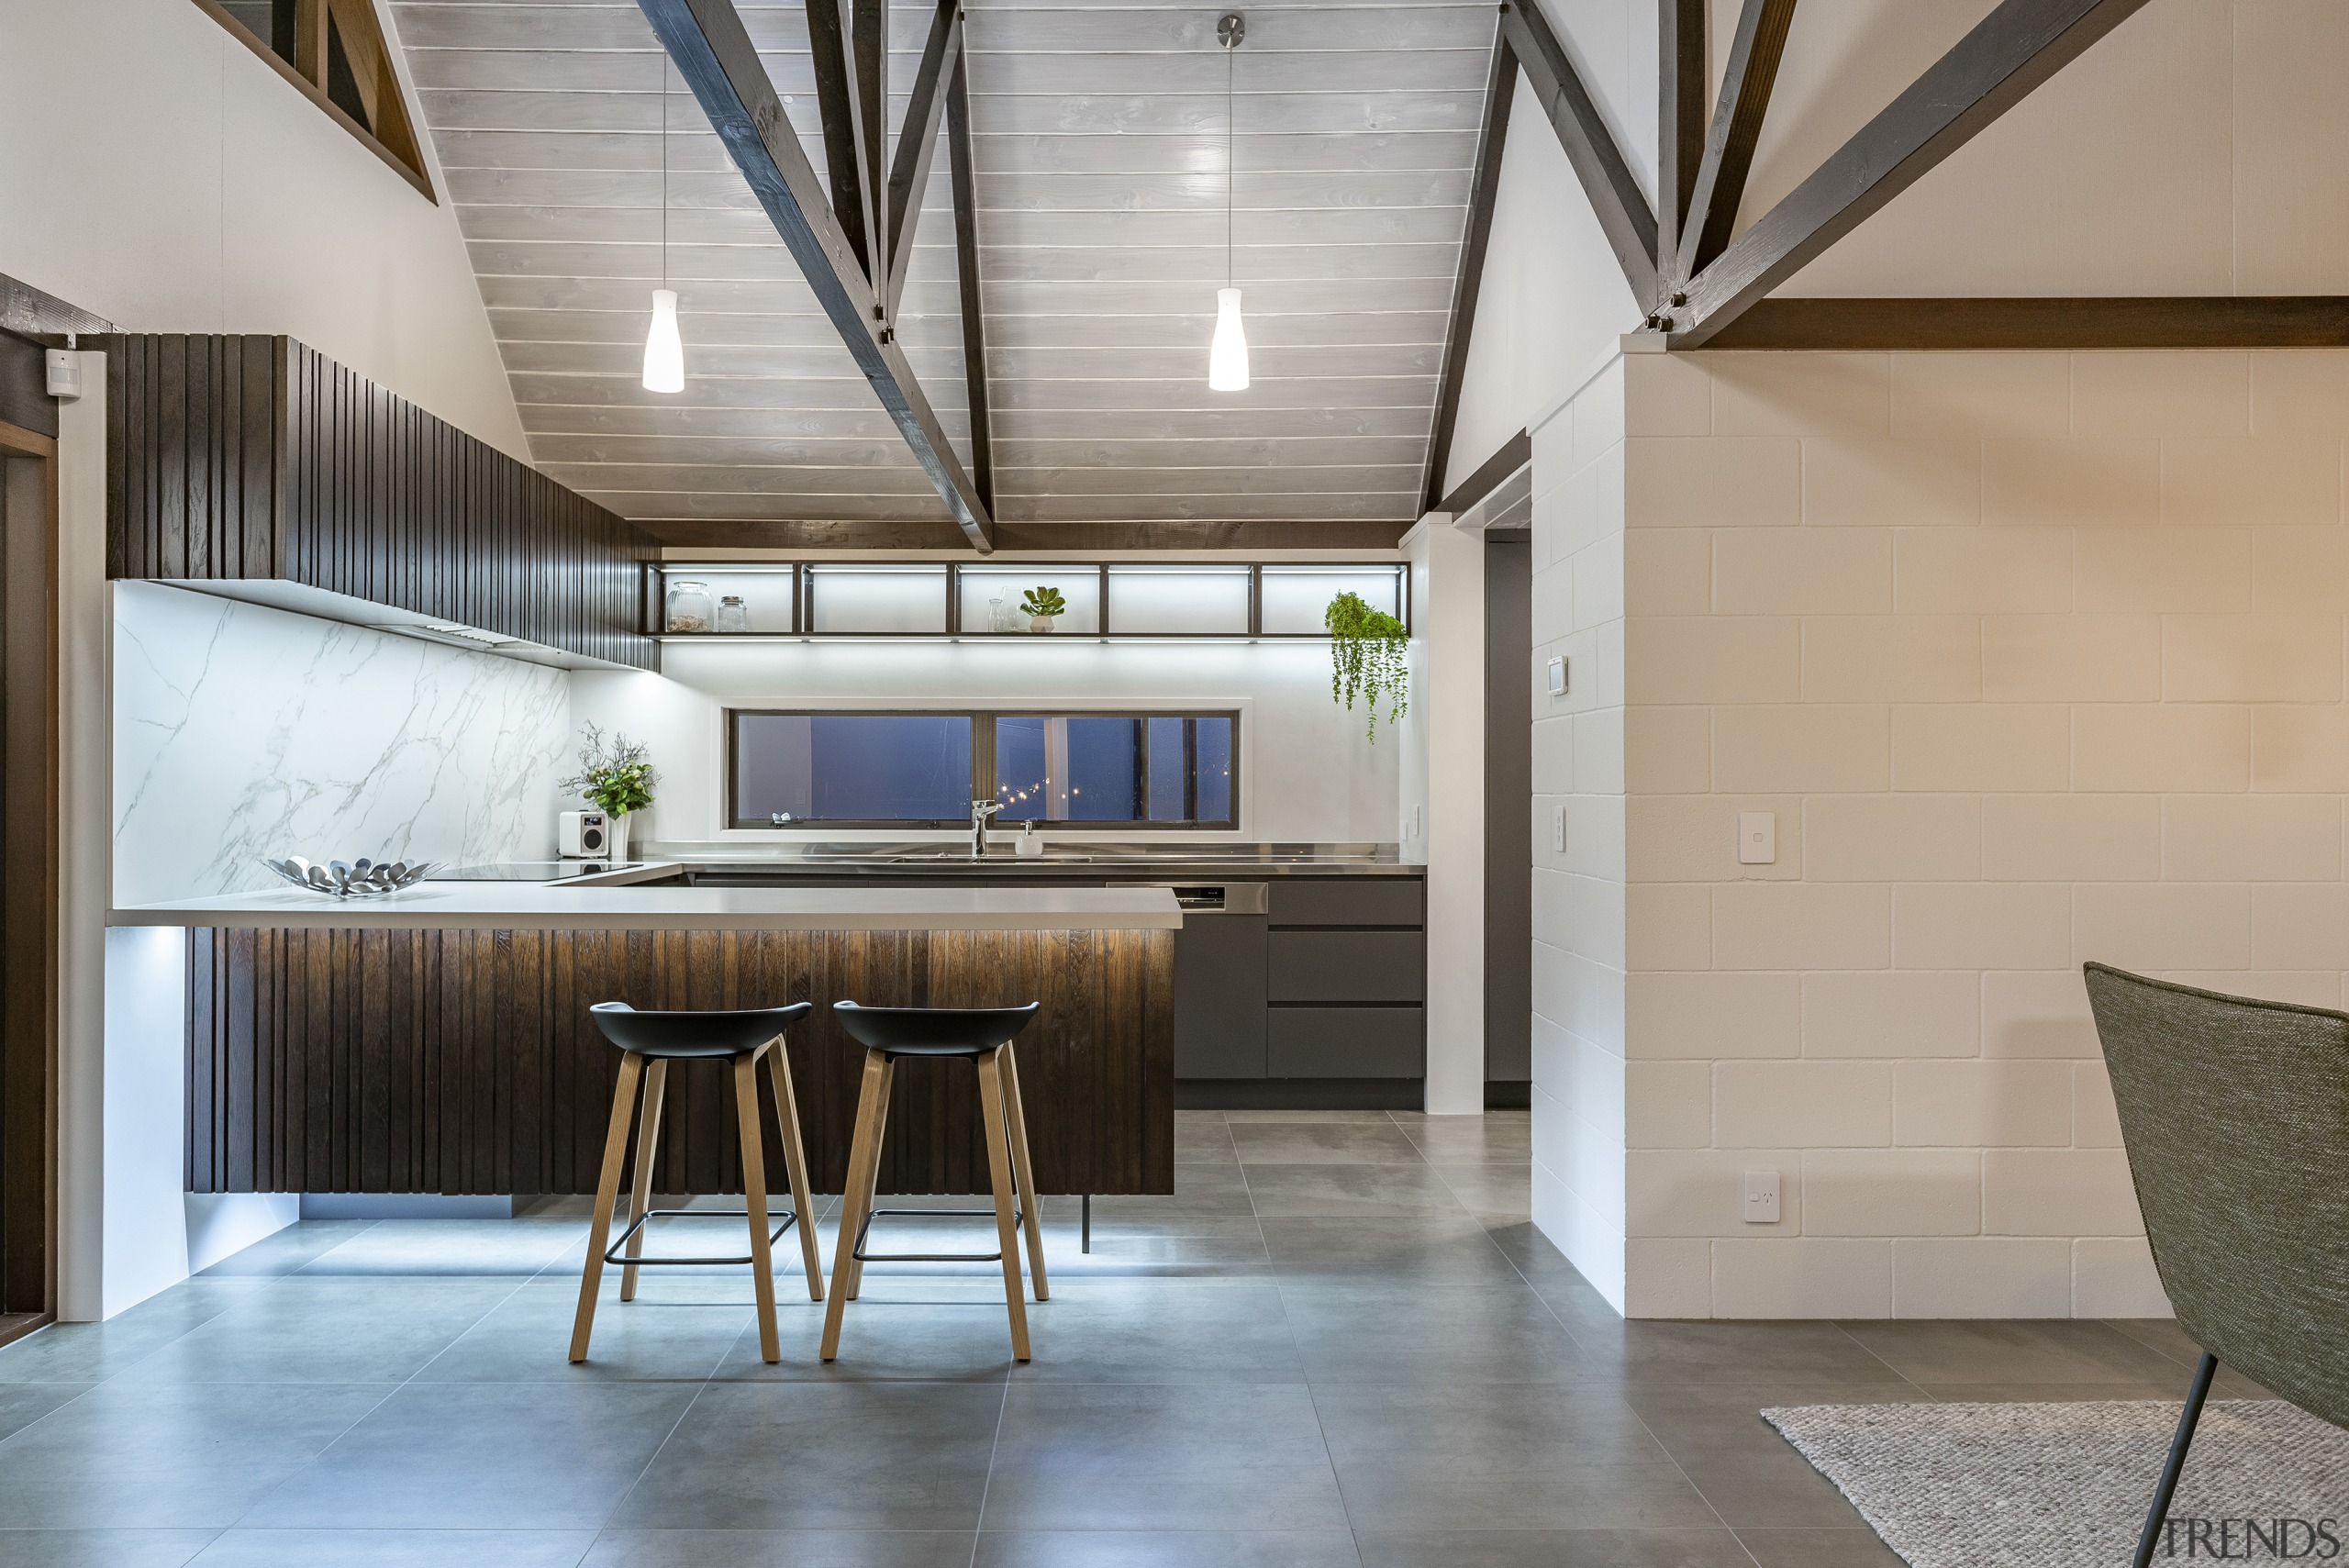 For this kitchen, by professional designer Kira Gray,